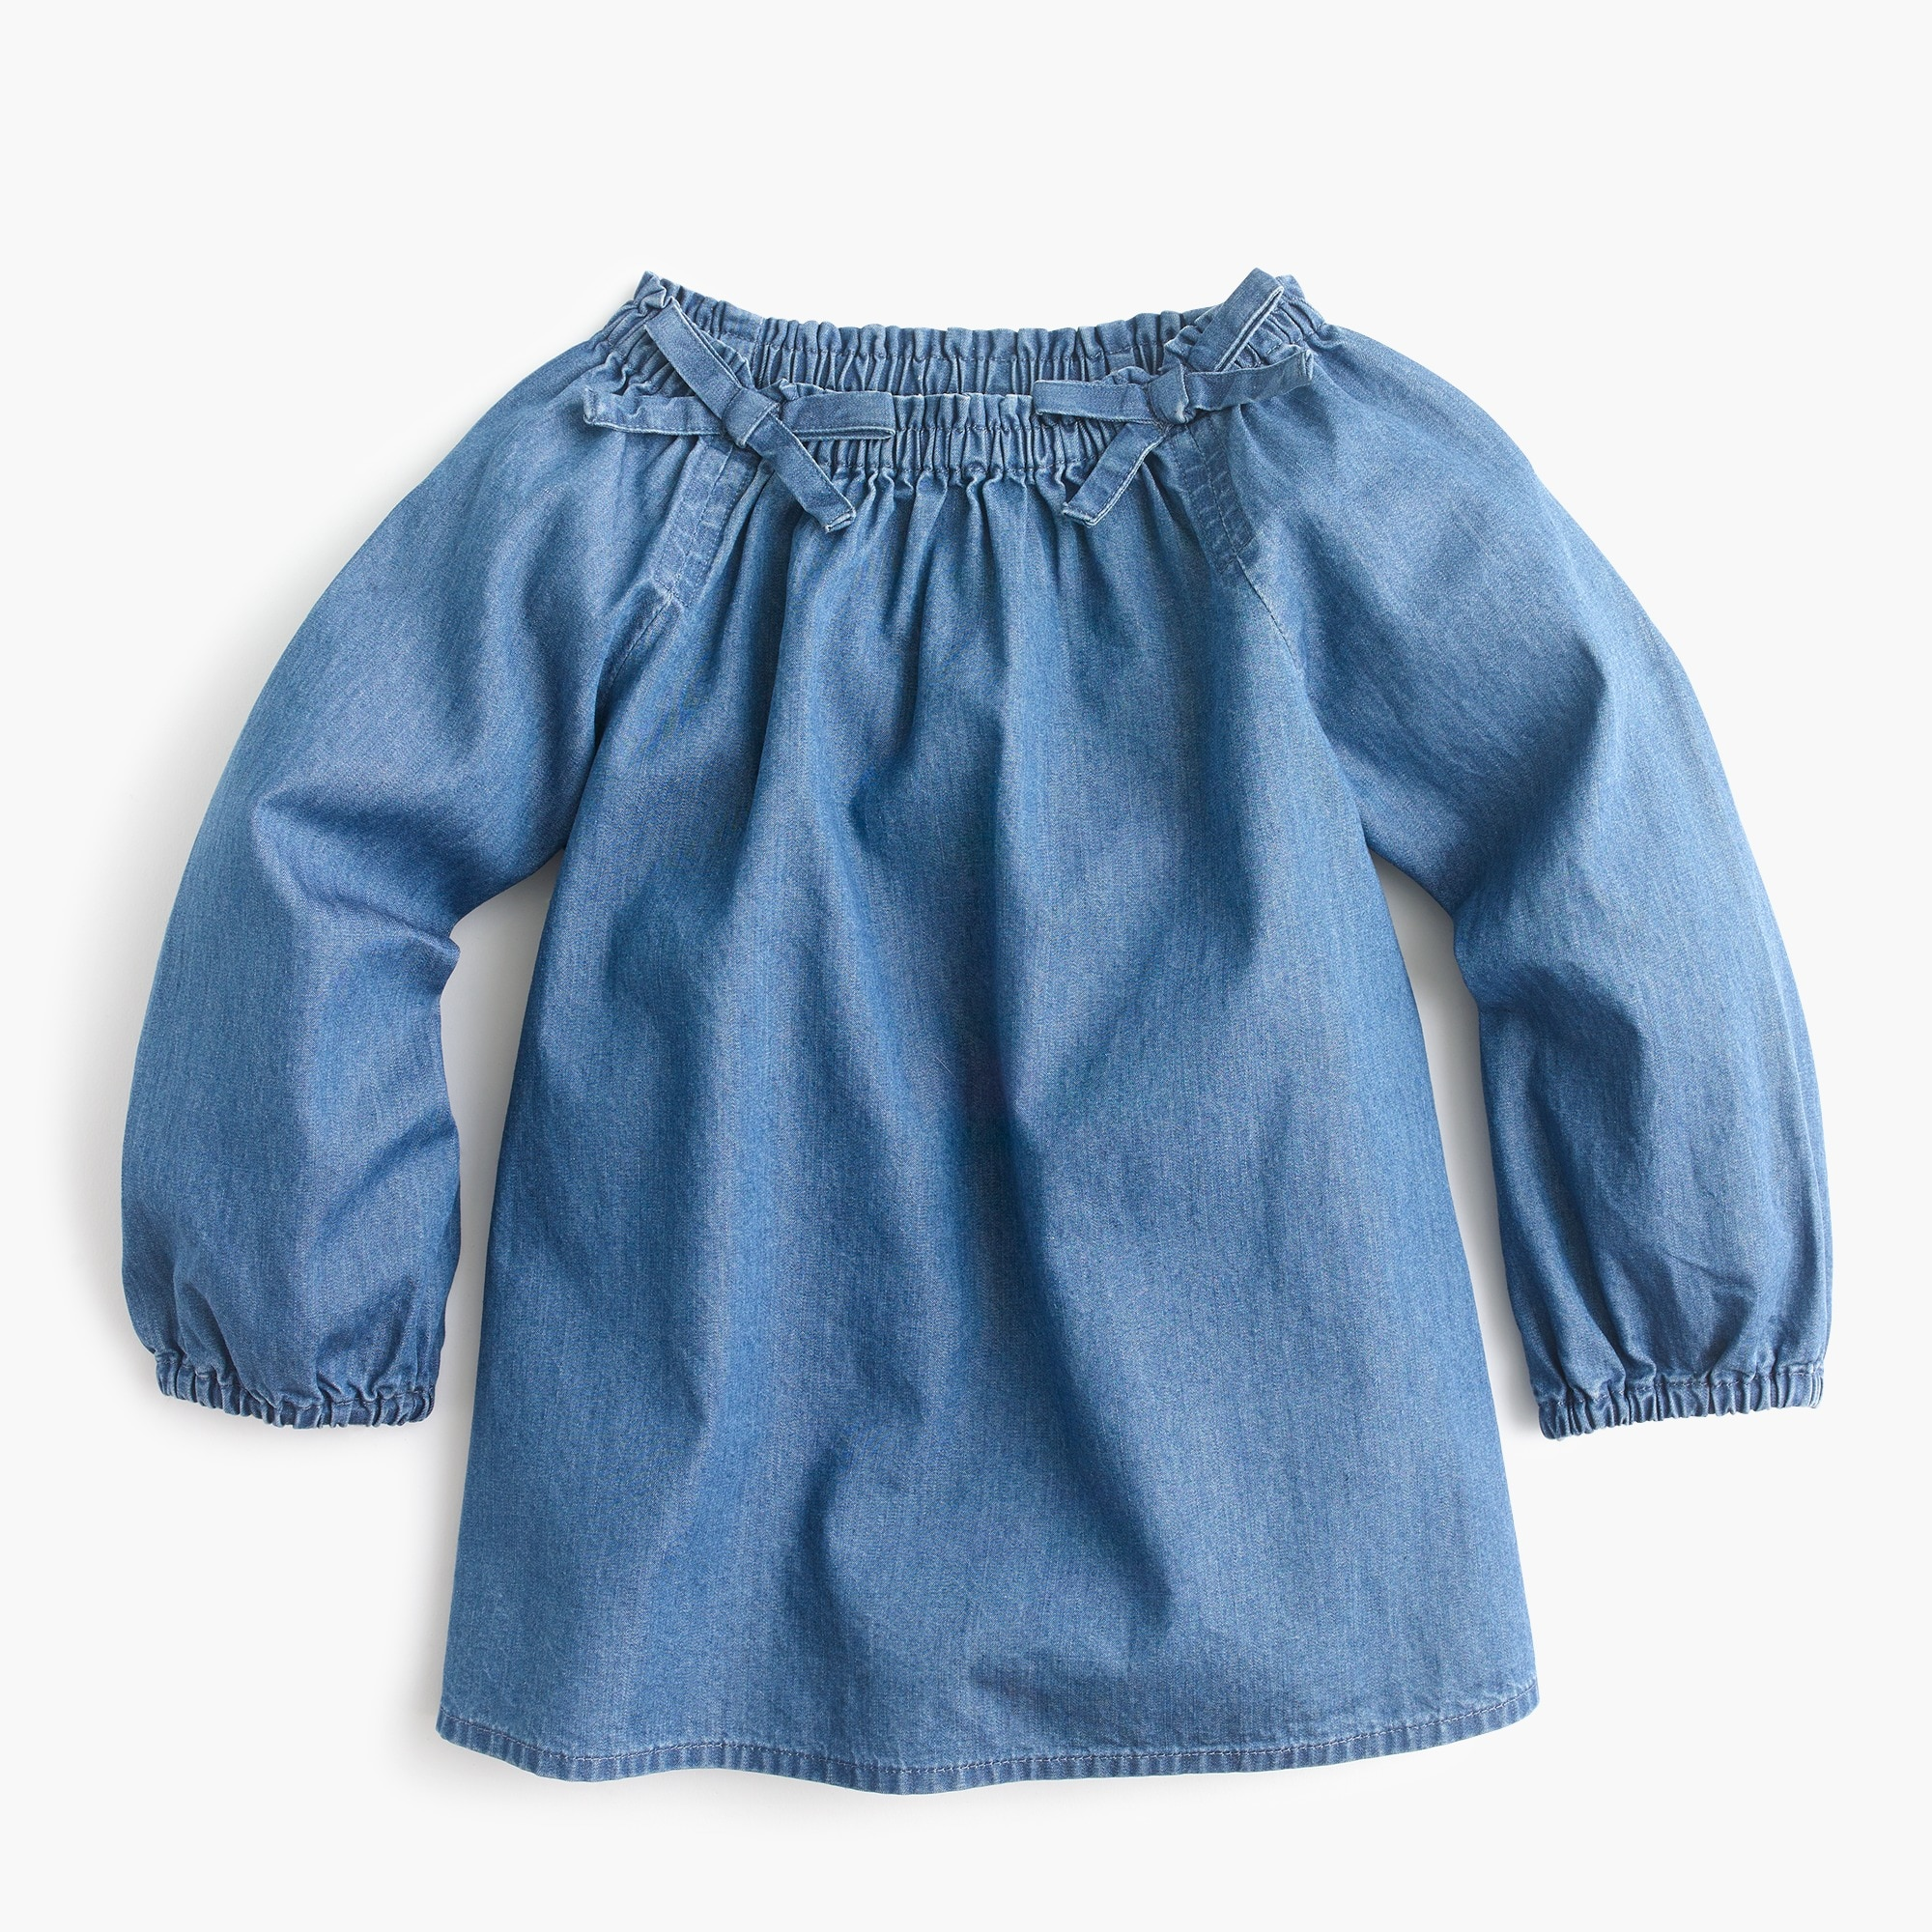 Image 1 for Girls' smocked-neck top in chambray